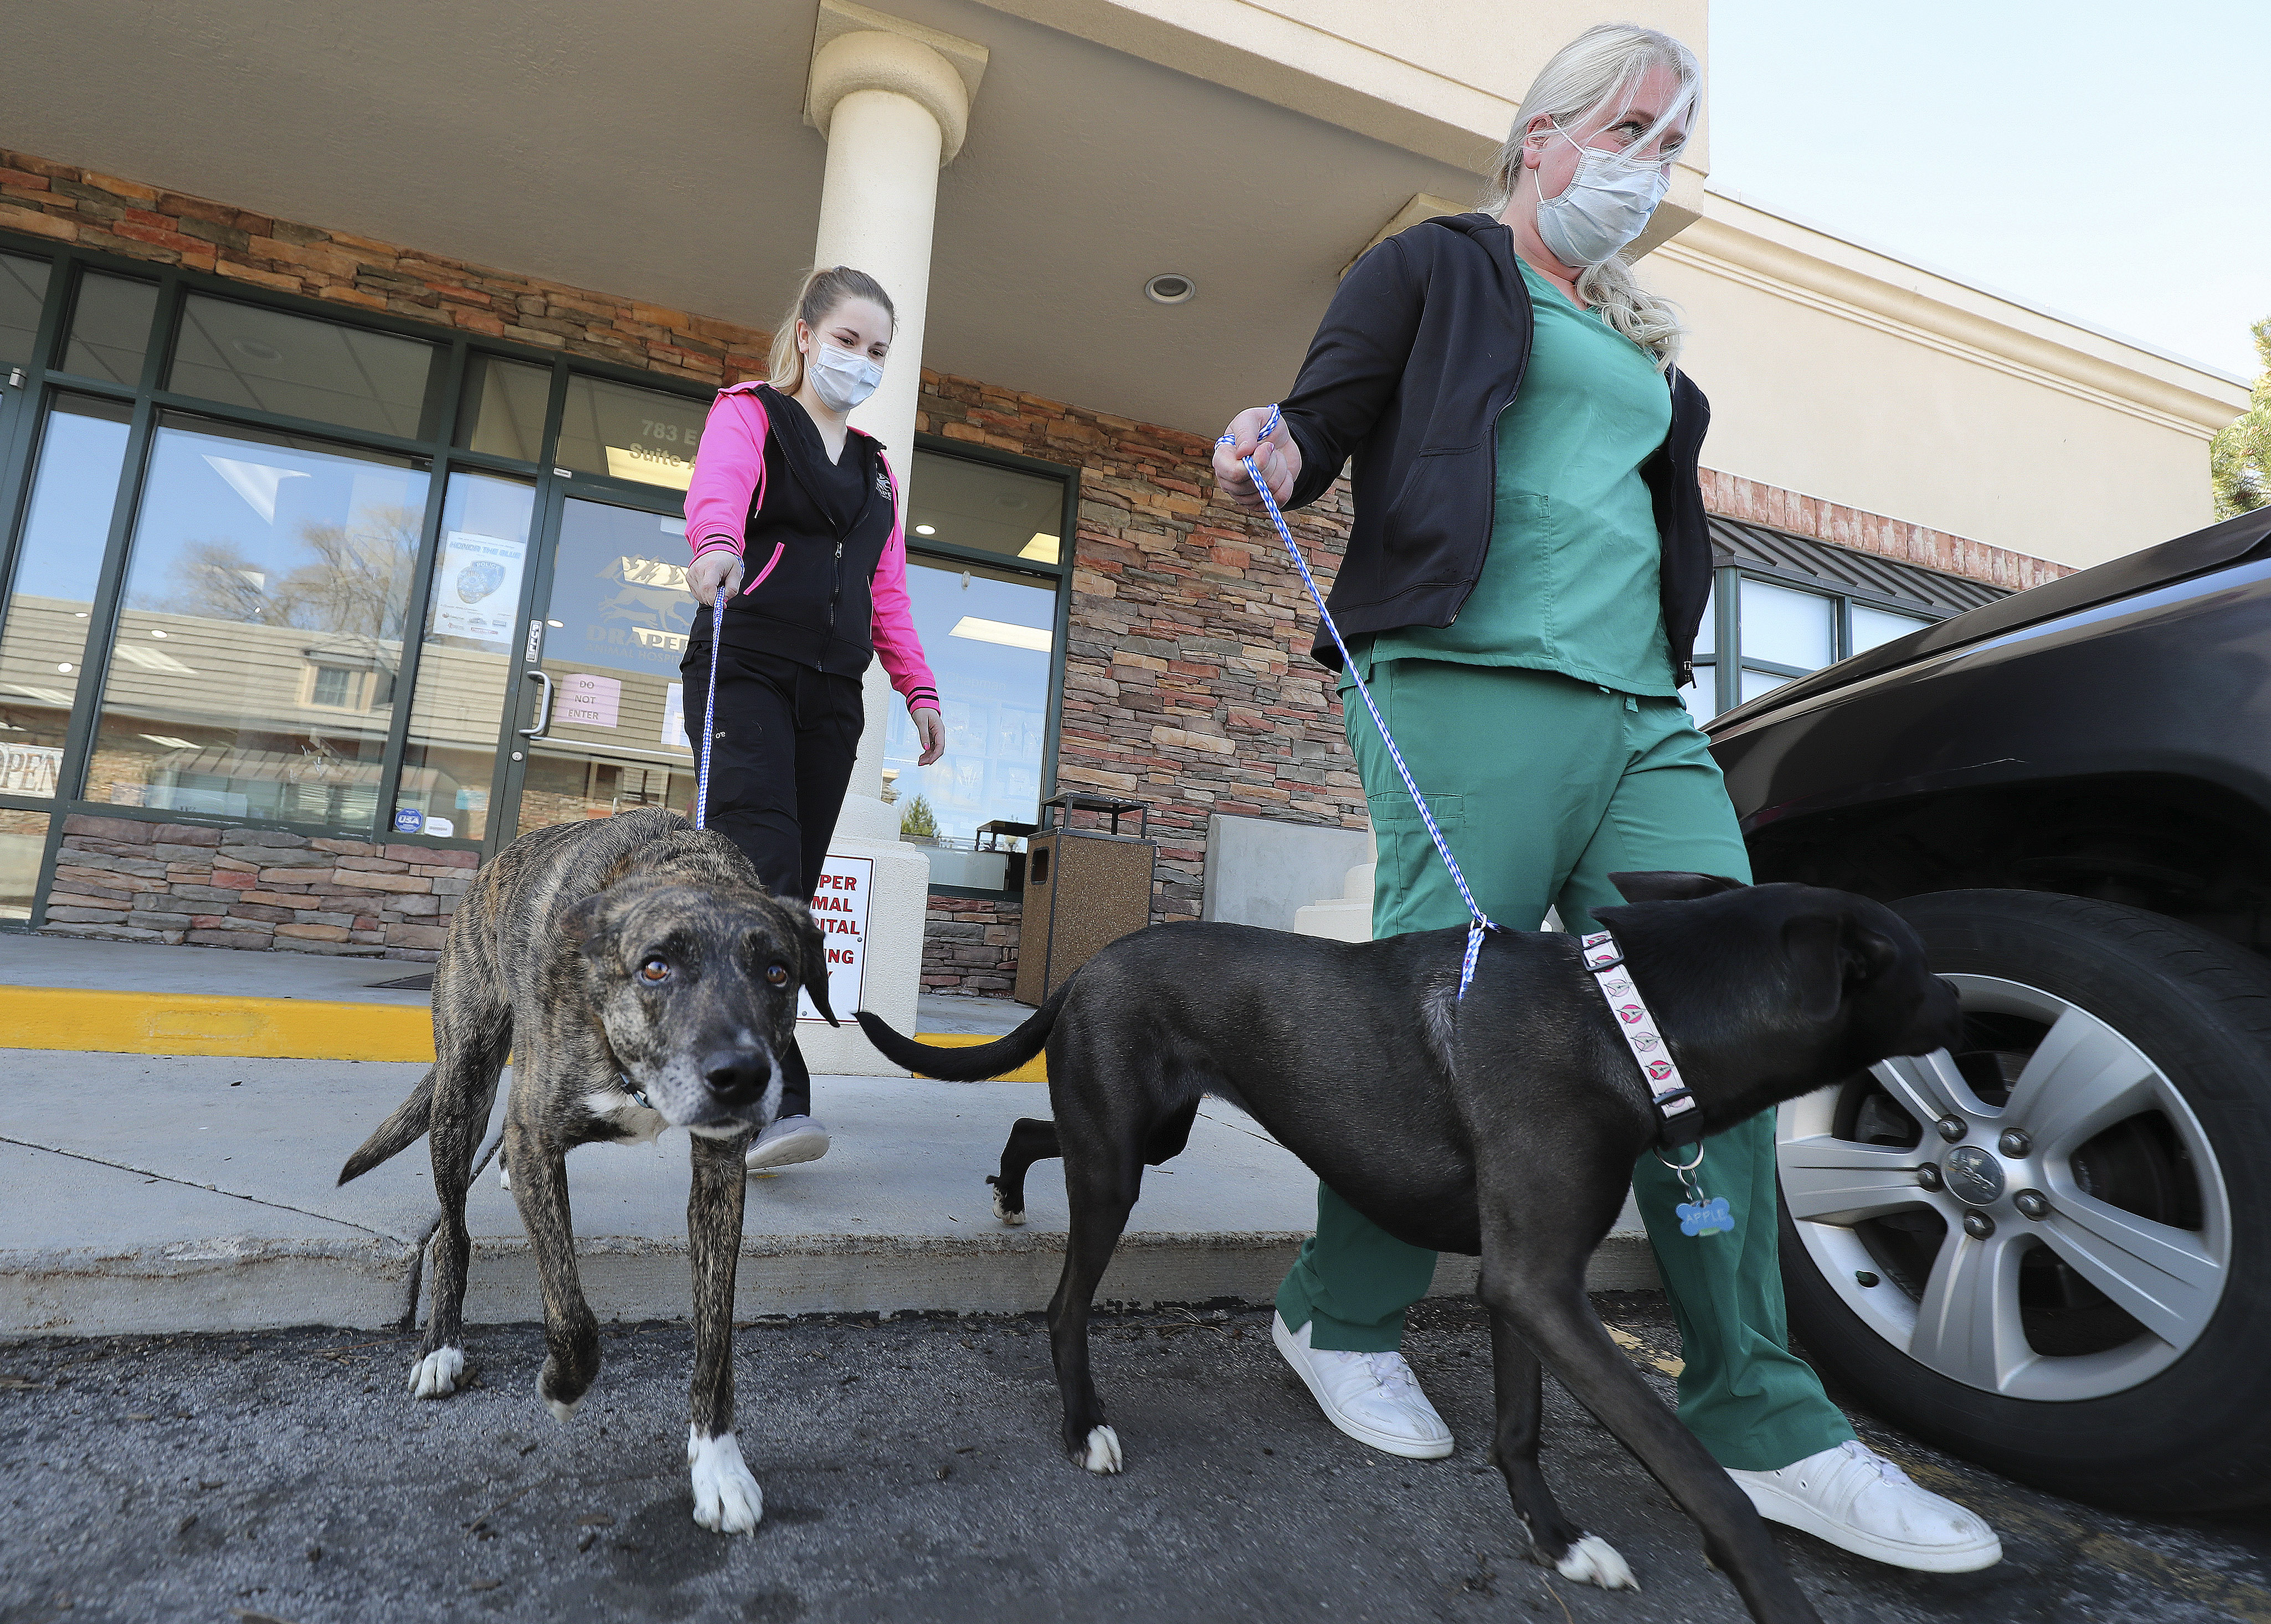 Vet technicians Jessica Allen and Tiffany Marvos take dogs to their owner curbside at Draper Animal Hospital in Draper on Wednesday, April 1, 2020. Animal health care providers are trying to minimize exposure during the coronavirus pandemic.